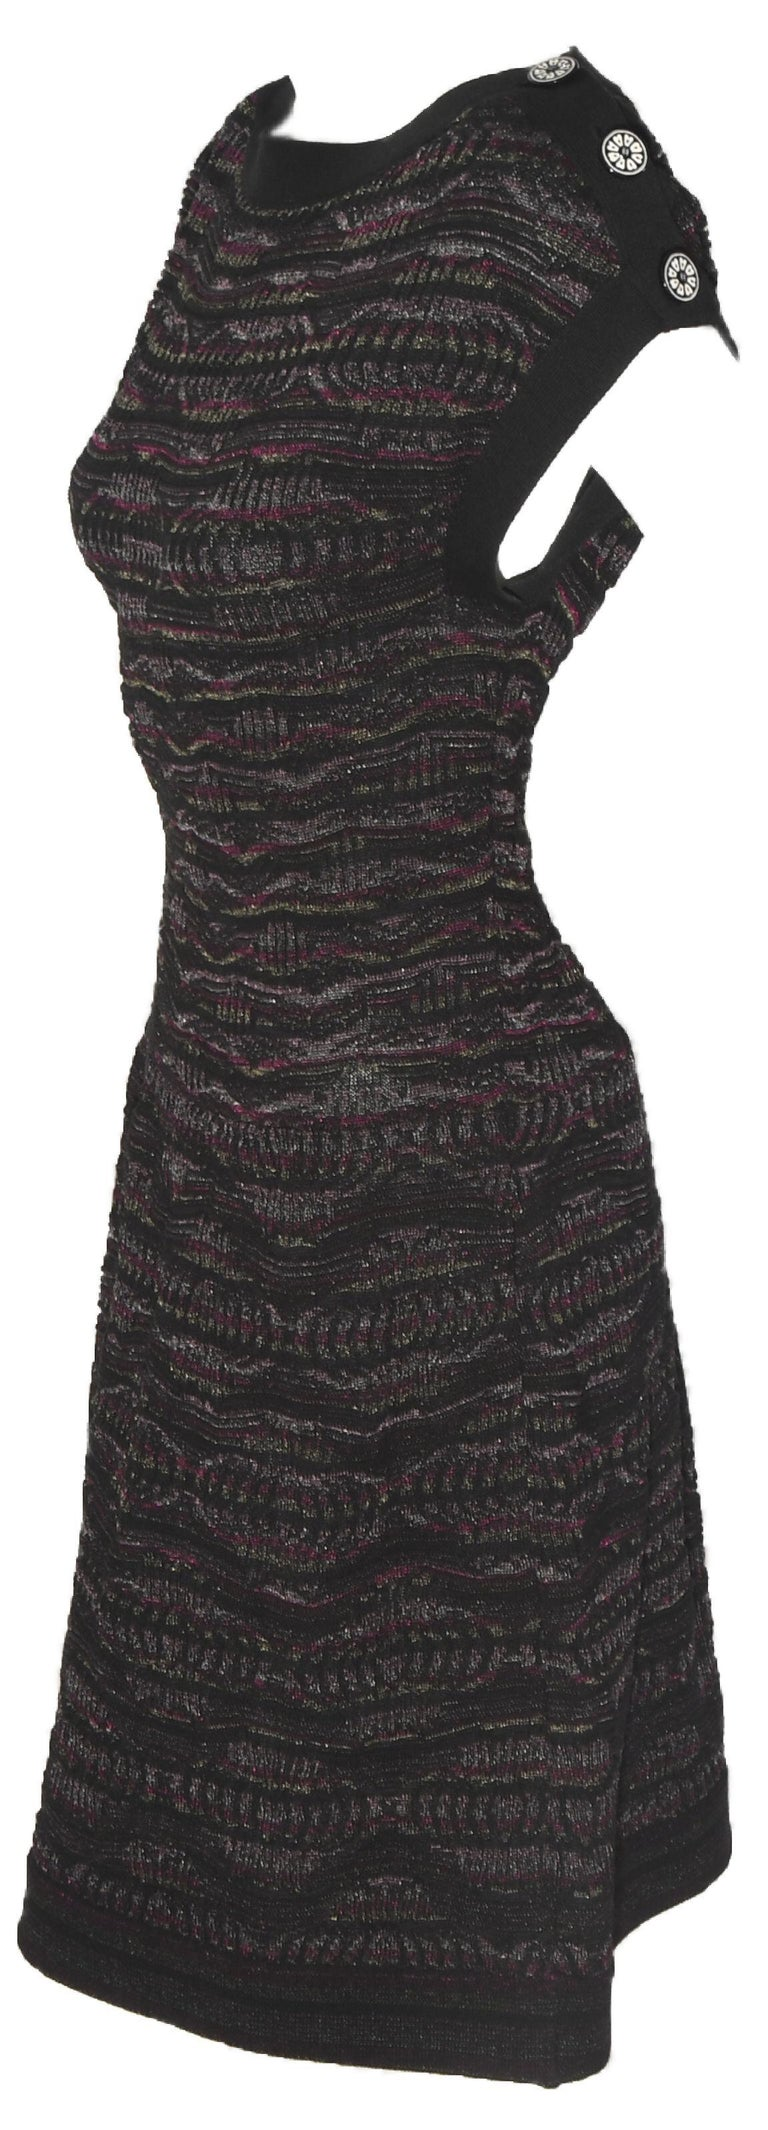 Women's Chanel Textured Knit Dress Black/Purple/Silver Throughout  For Sale